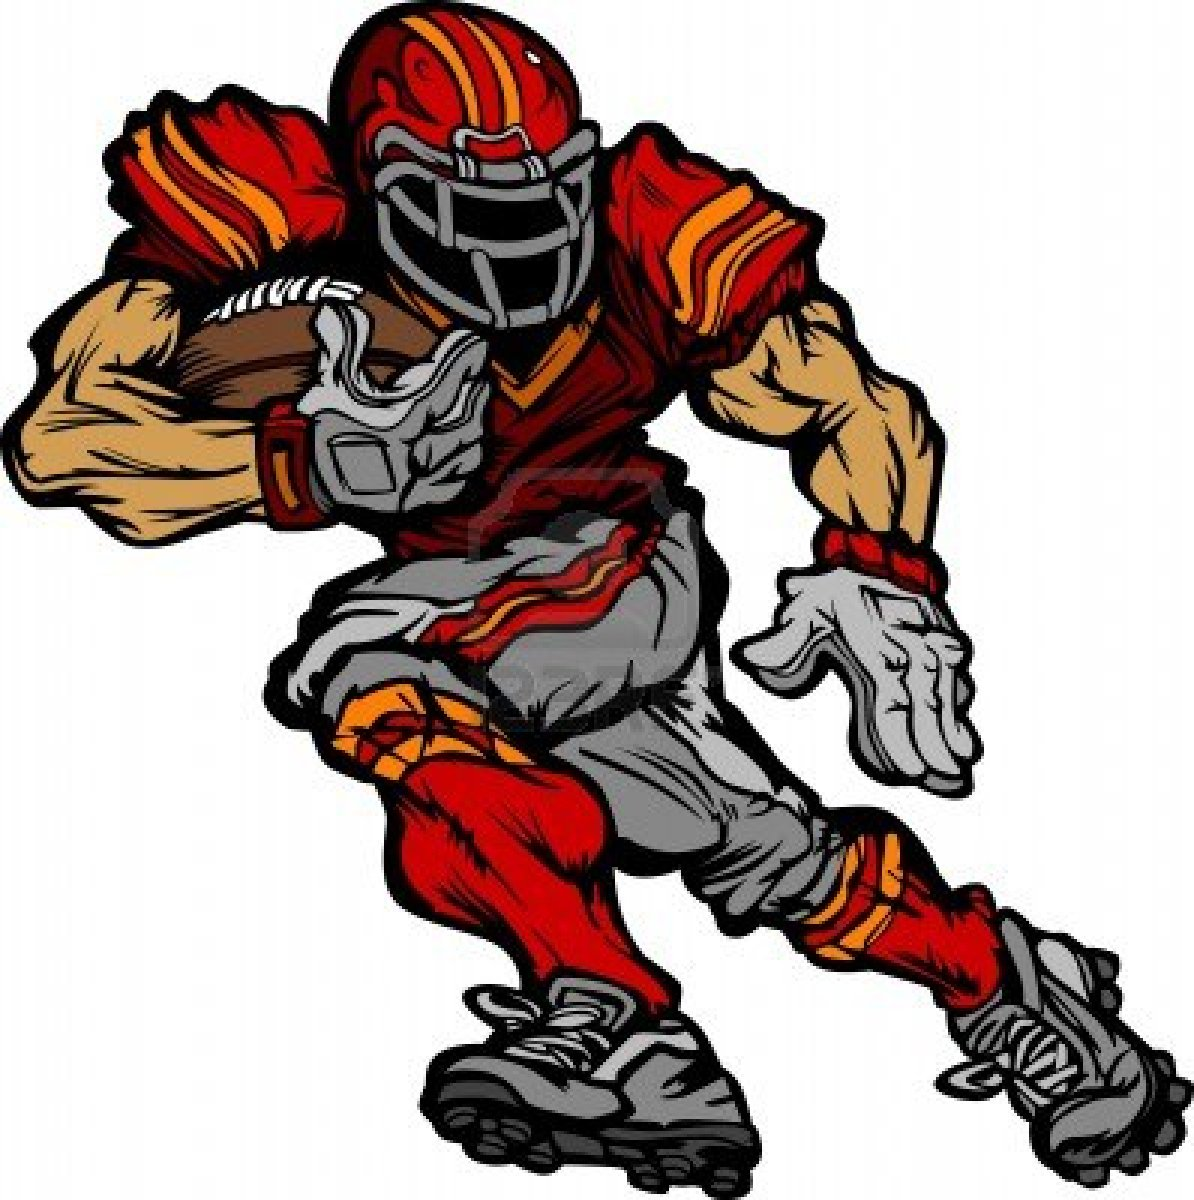 Nfl football character clipart svg transparent stock Animated Nfl Ball - ClipArt Best svg transparent stock